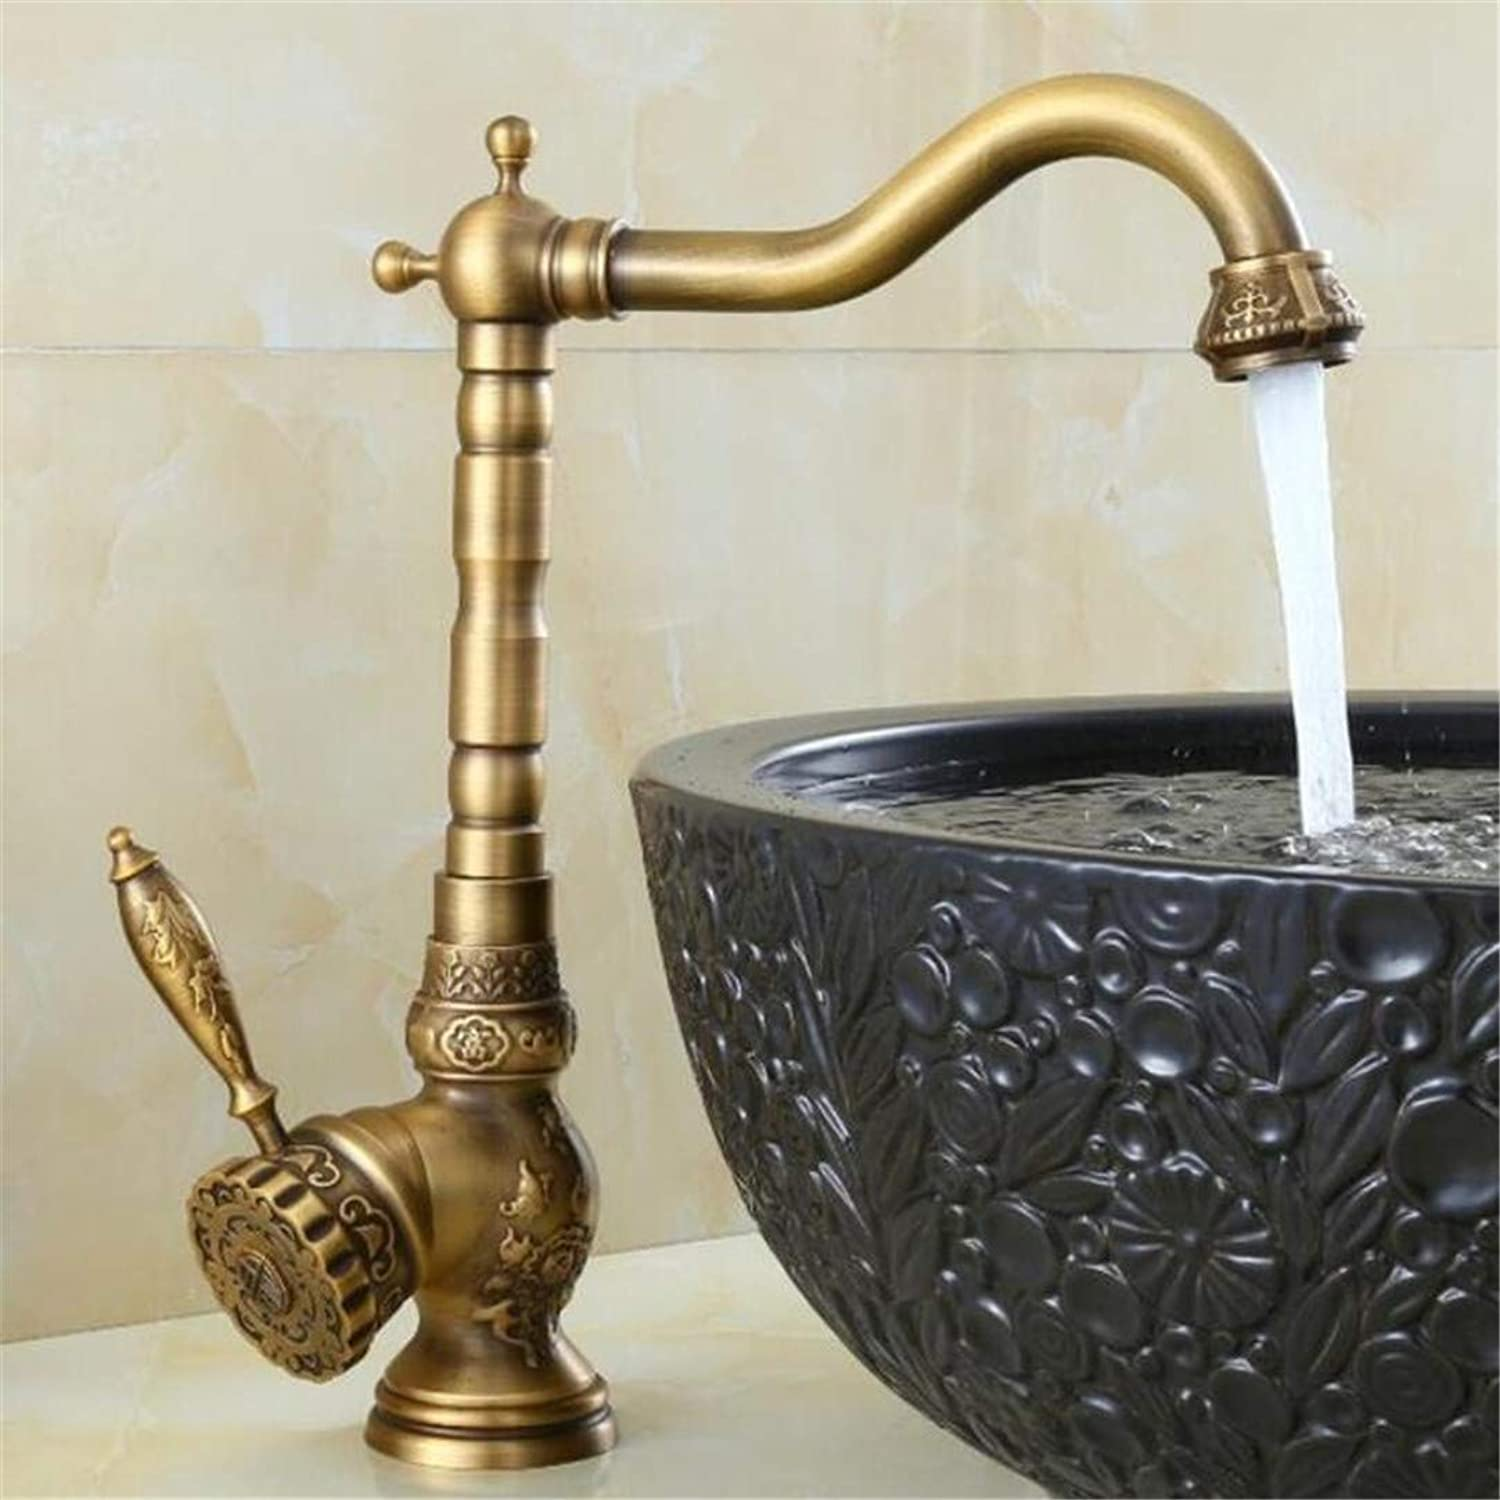 Faucet Washbasin Mixer New Arrival High Quality Antique Cold and Hot Single Lever High Bathroom Sink Faucet Basin Faucet